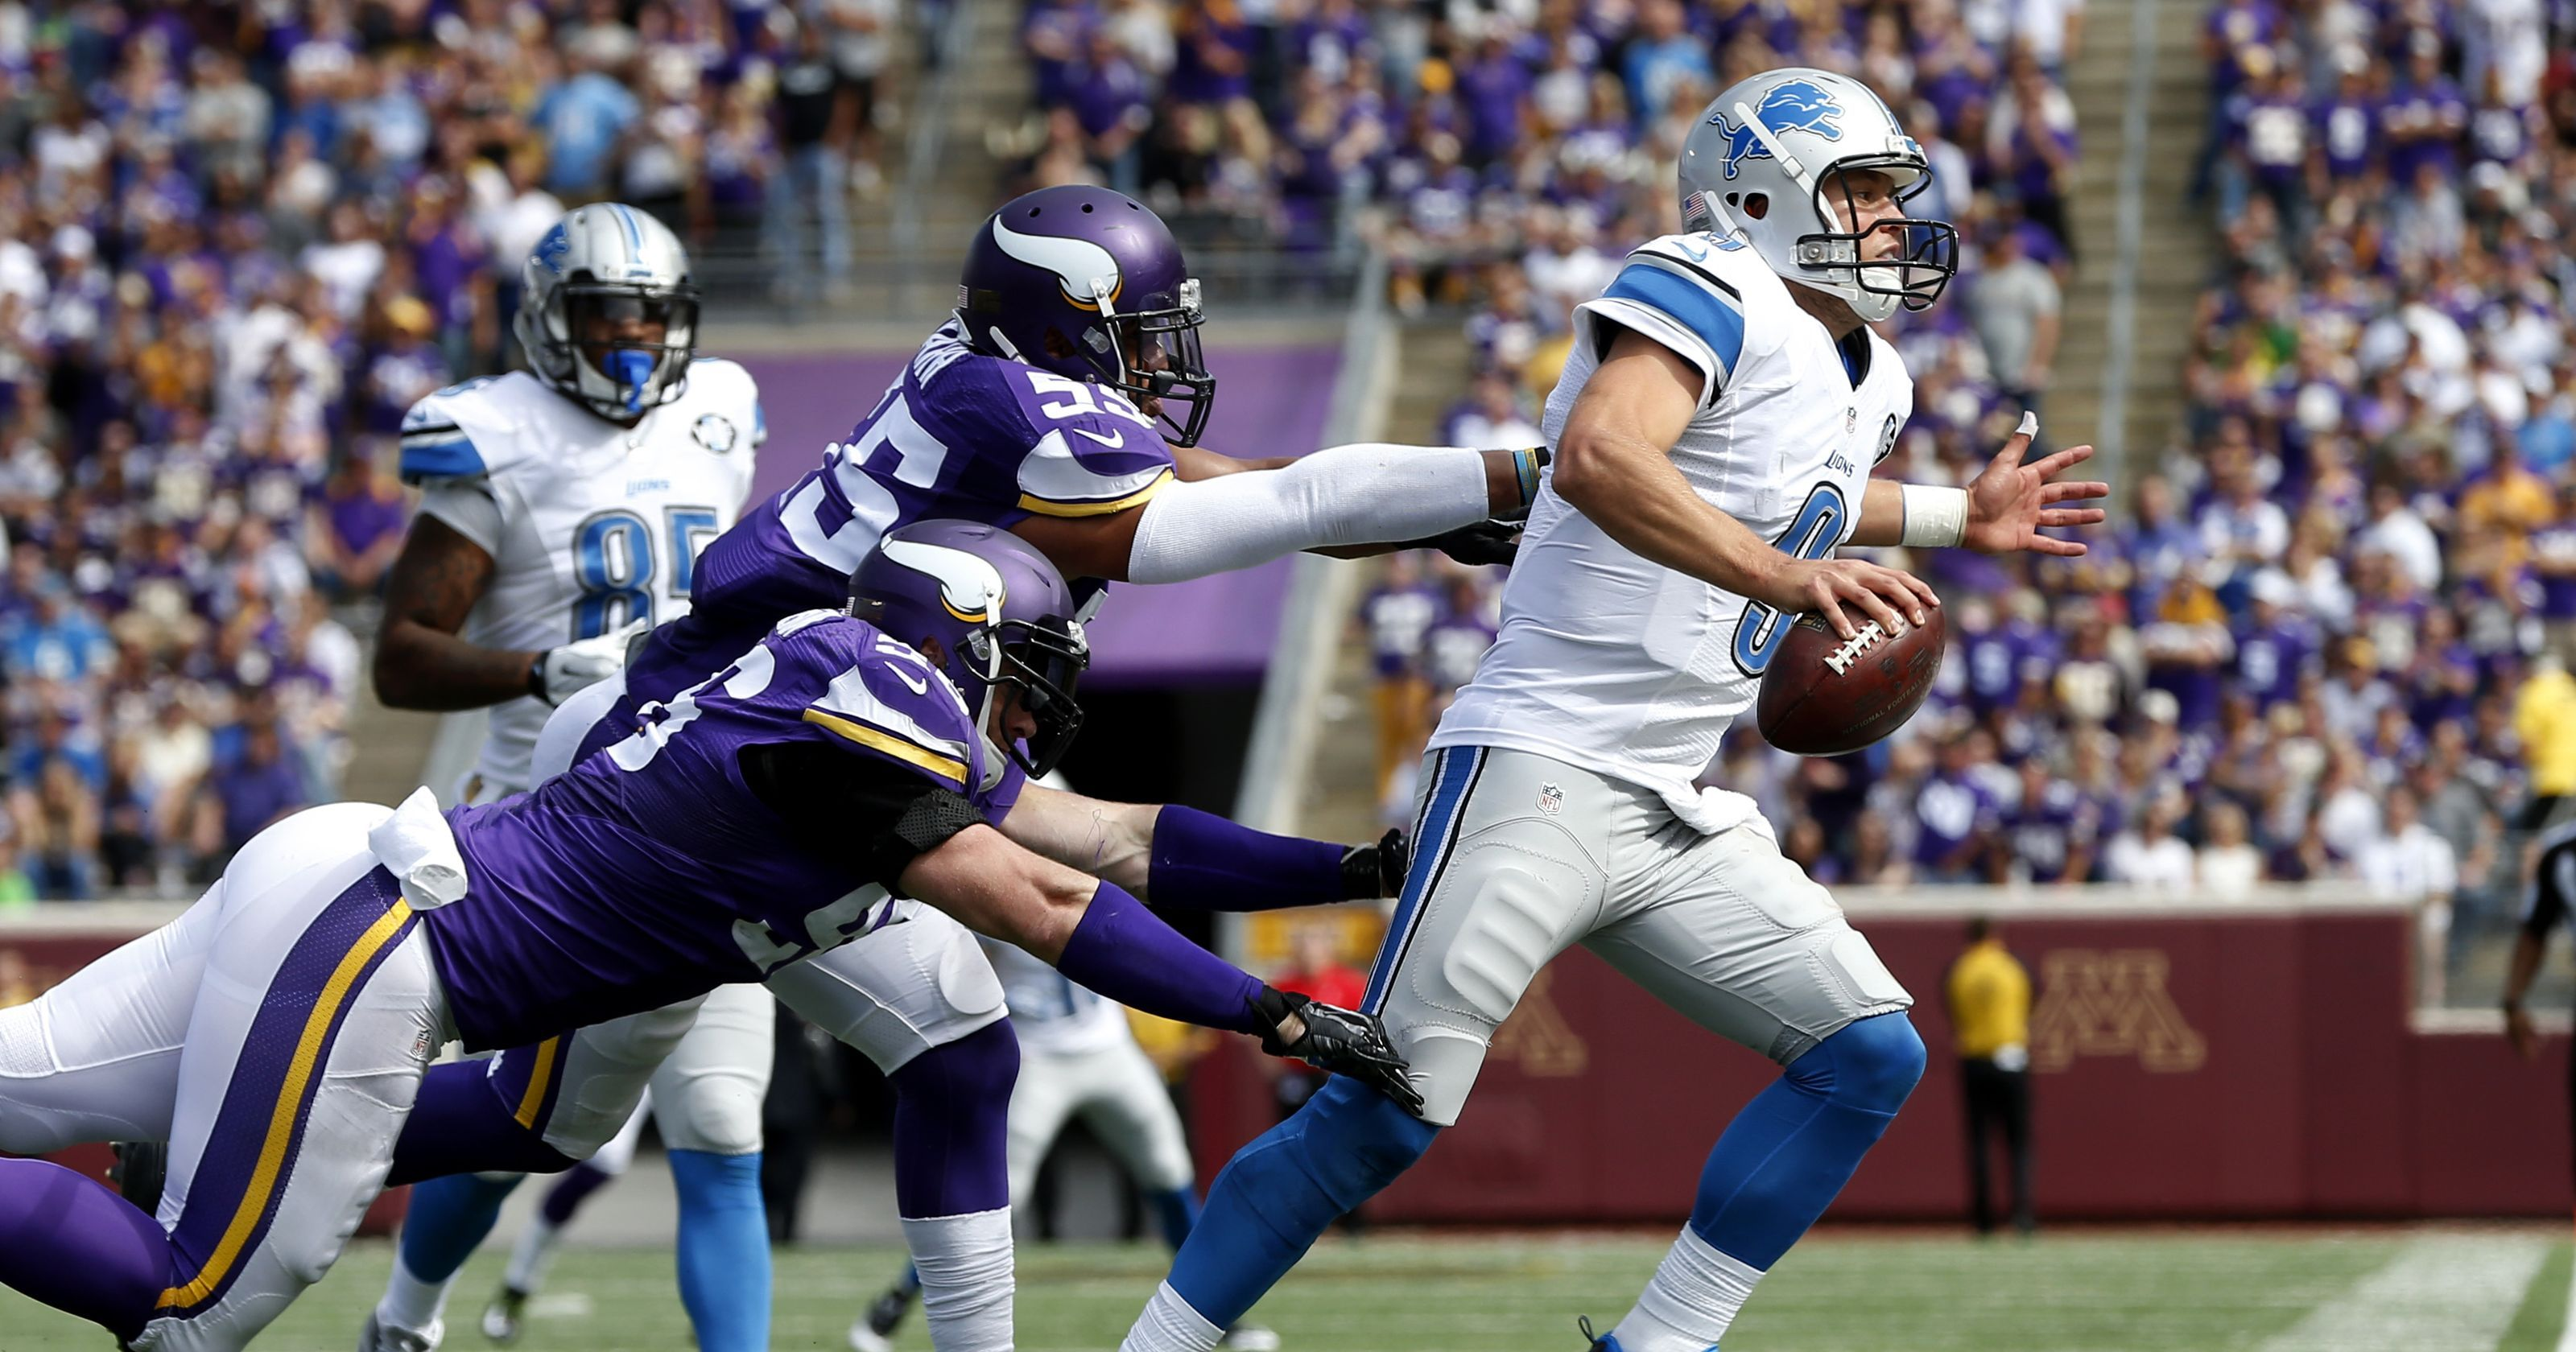 The NFC North takes centerstage in Week 9 as the Vikings